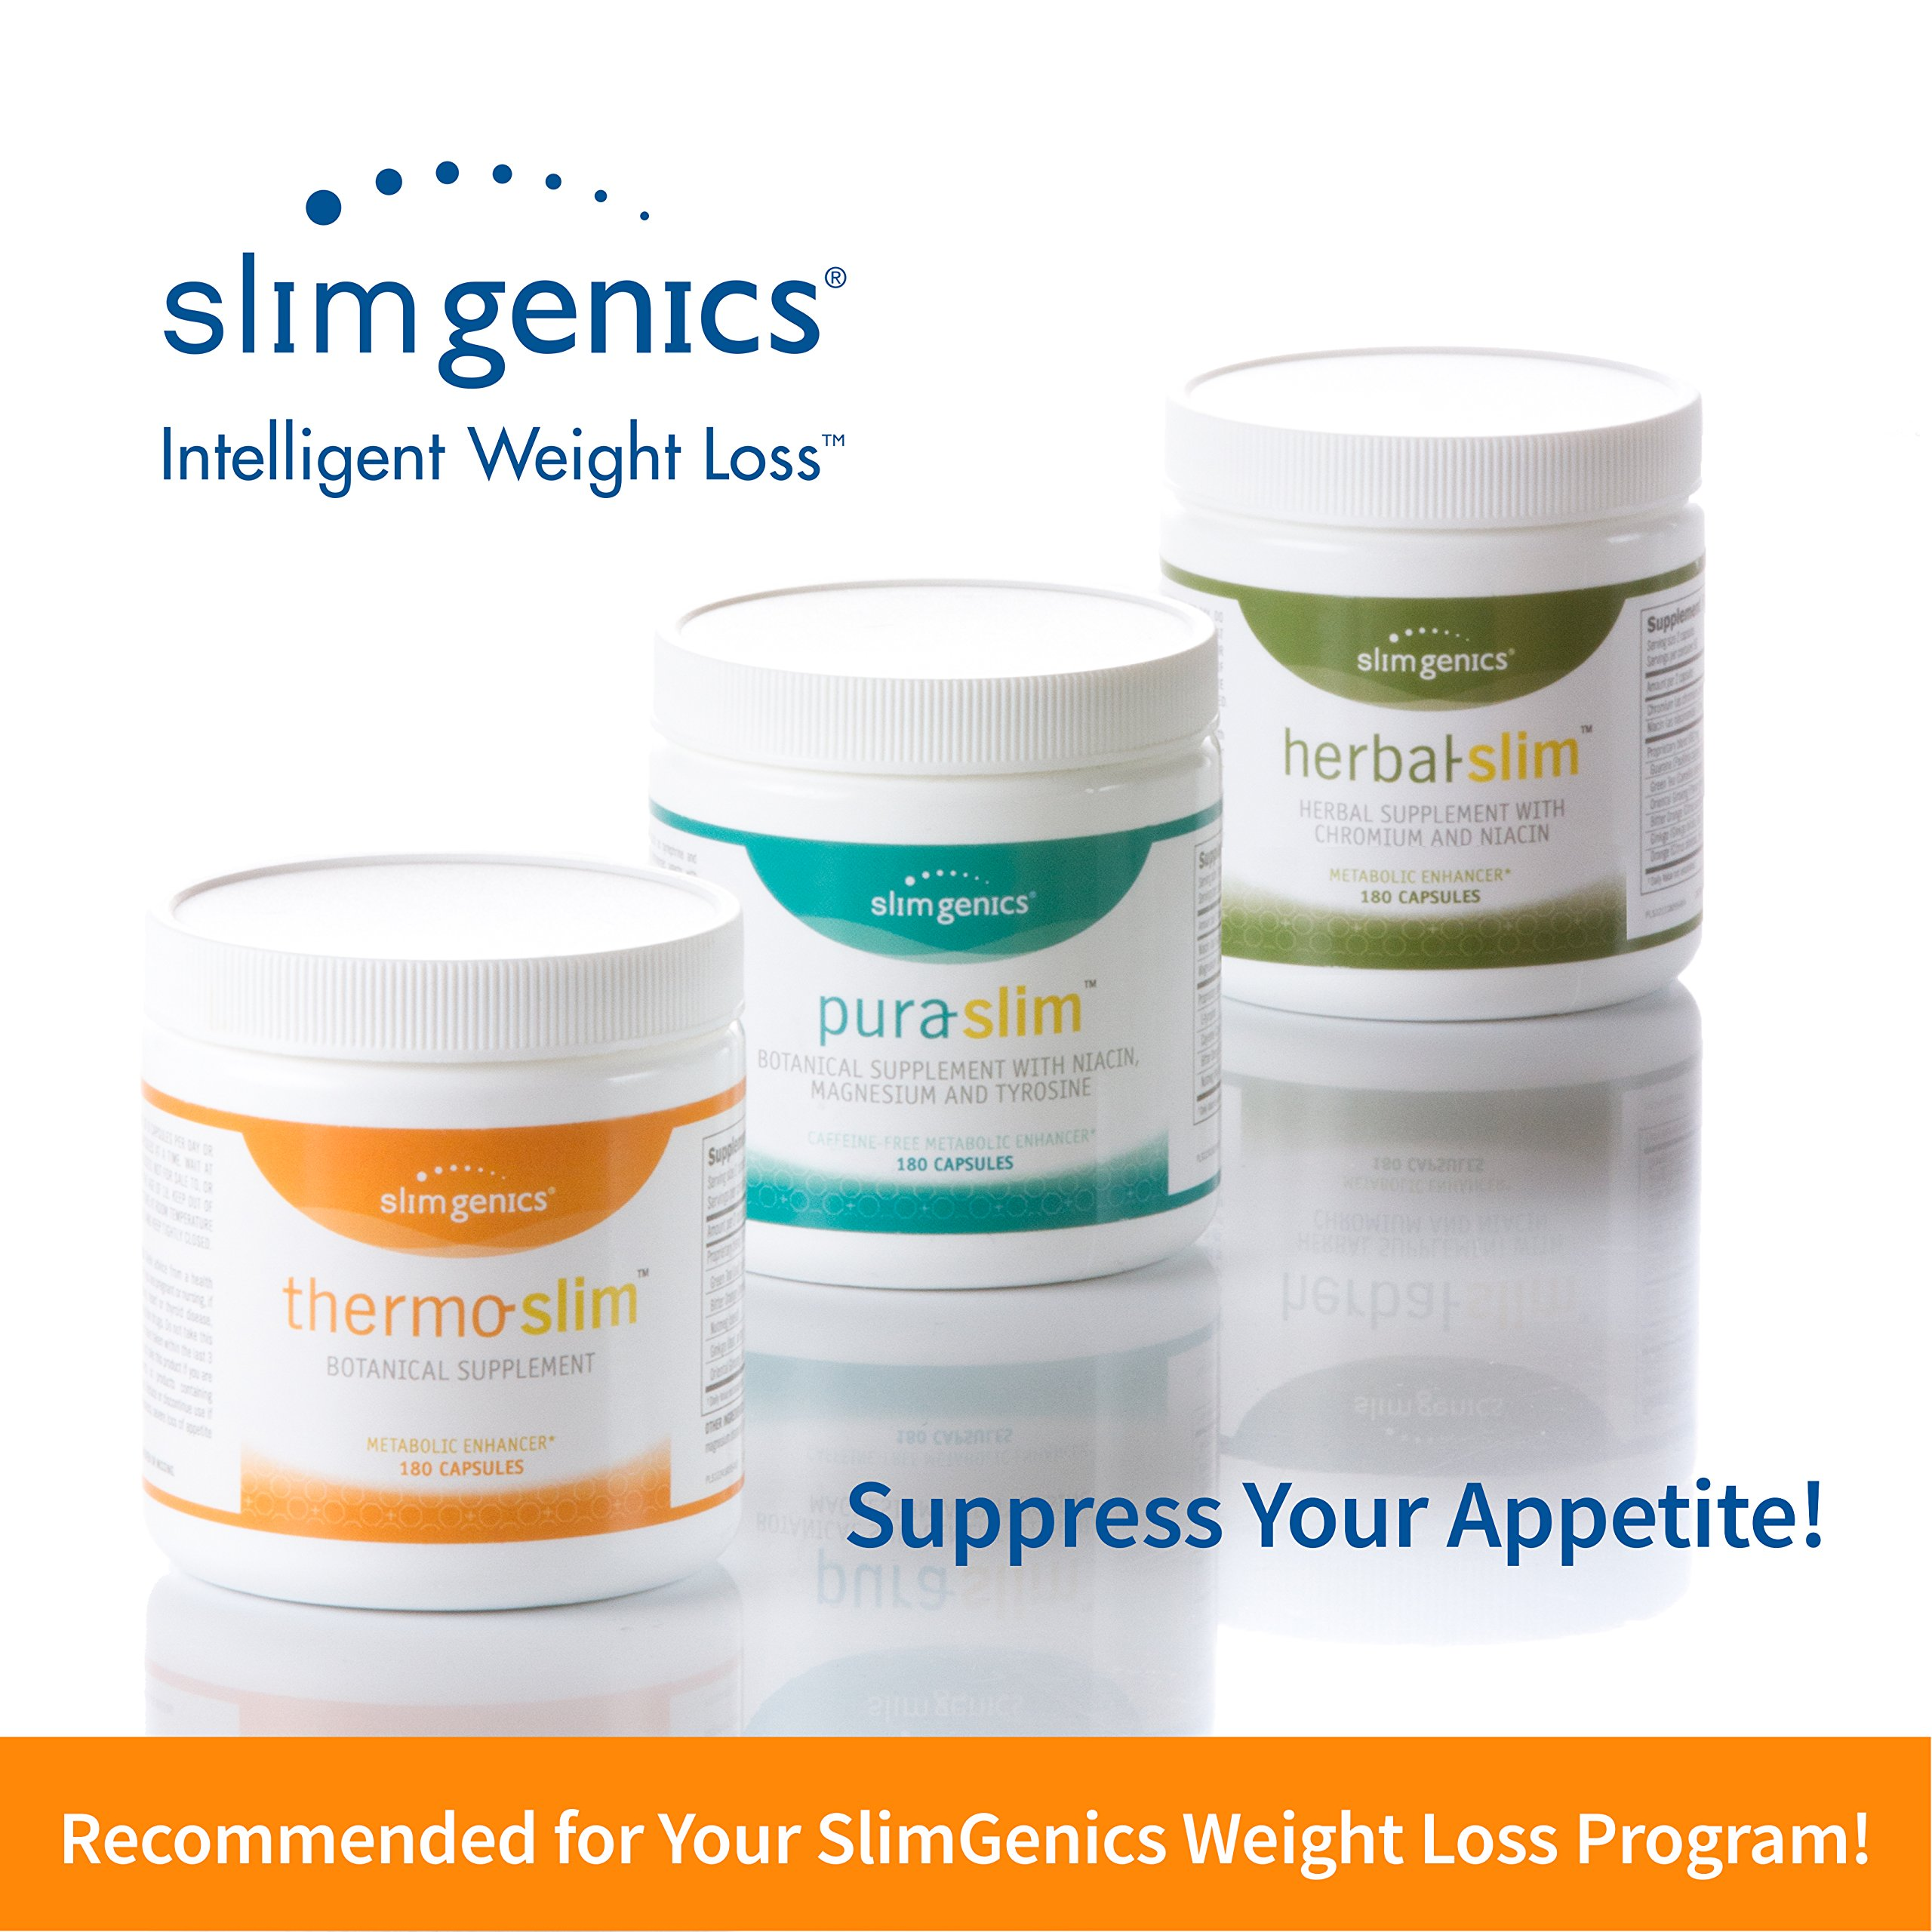 SlimGenics Pura-Slim | Metabolizer Herb – Metabolic Booster with Powerful Herbs and Nutrients, Thermogenic Fat Burners for Weight Loss, Fights Fatigue and Increases Energy (180 Count) by SlimGenics (Image #8)